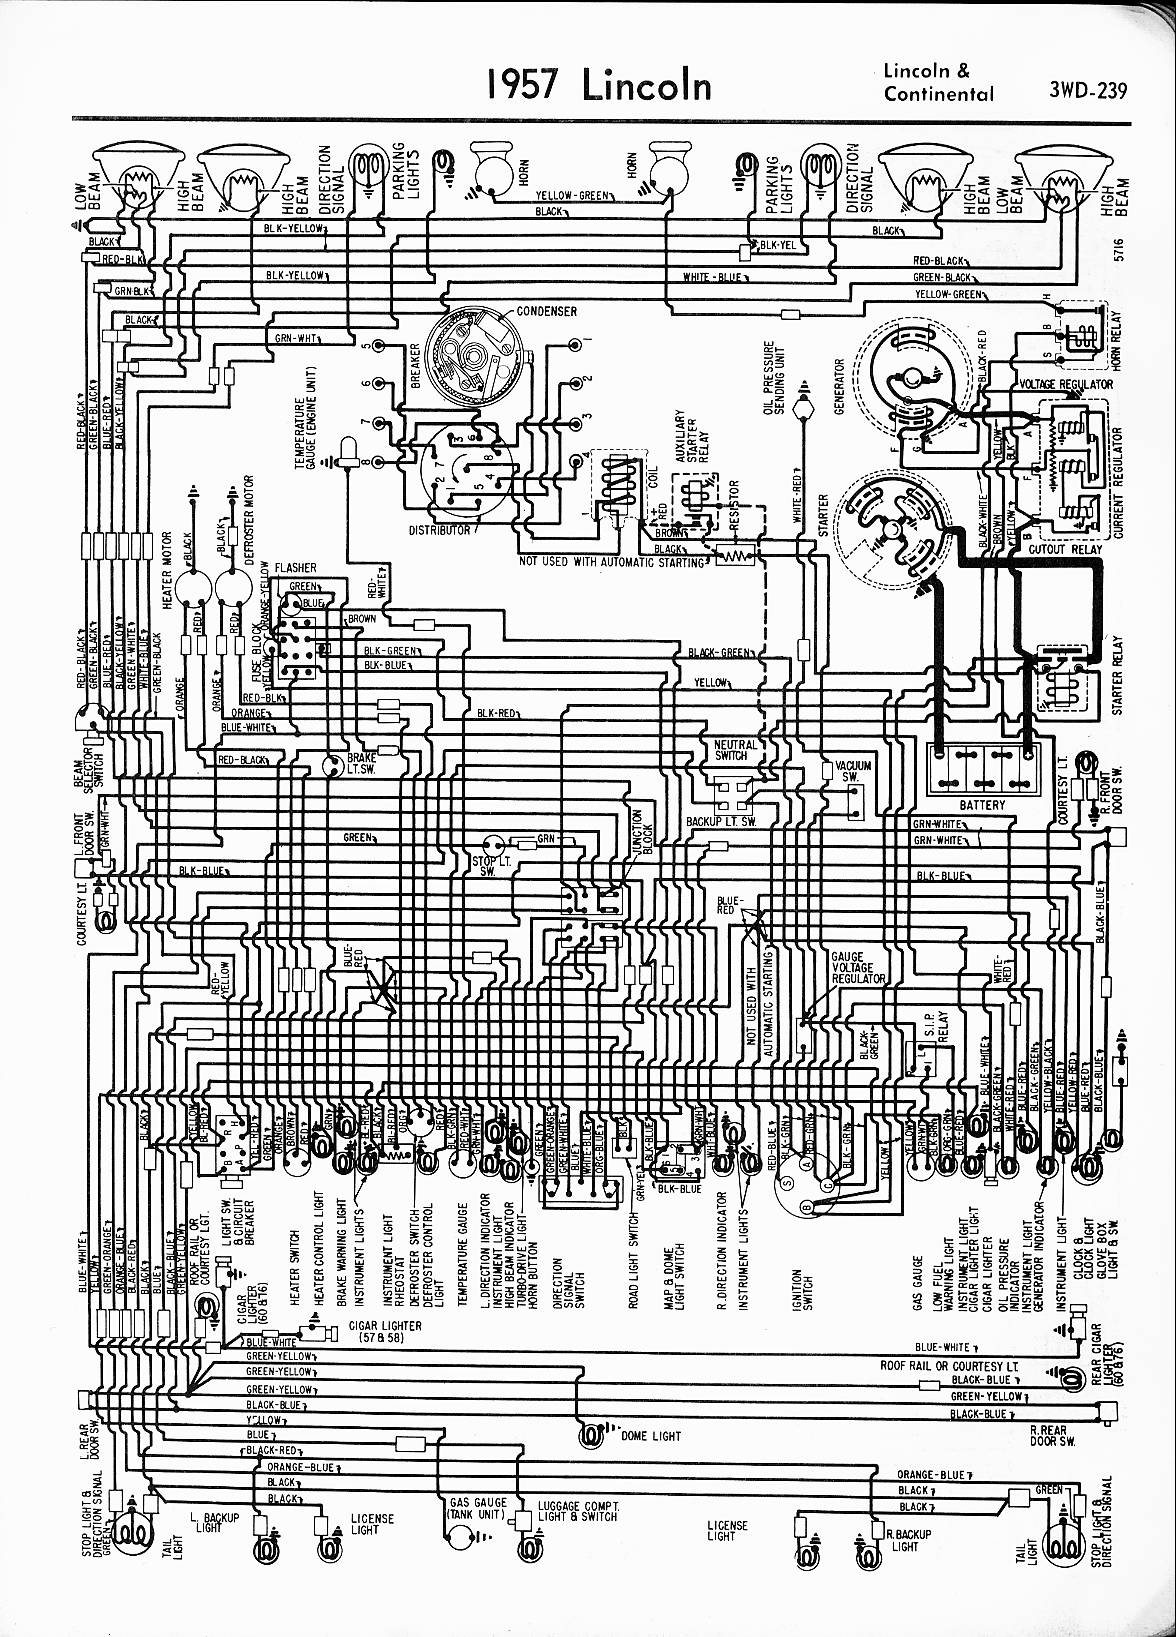 MWireLin_Lin57_z3wd 239z_001 lincoln wiring diagrams 1957 1965 1969 Lincoln Wiring Diagram at reclaimingppi.co